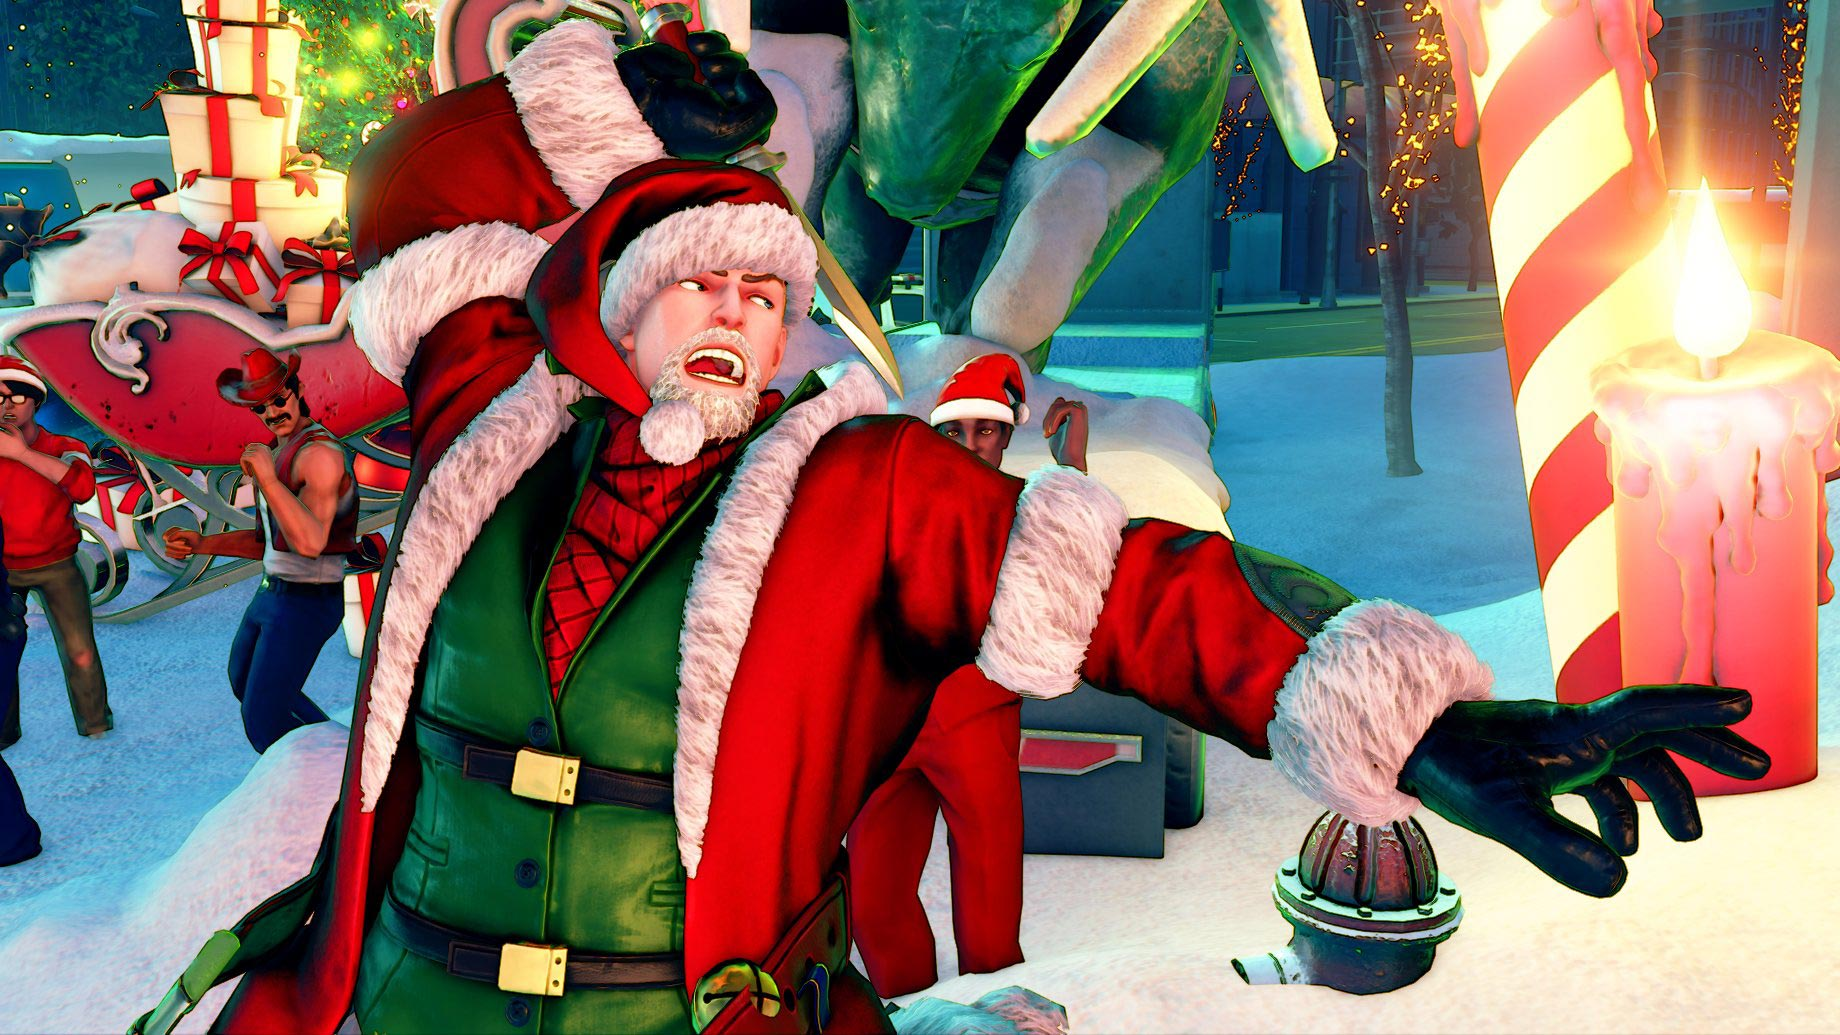 New Street Fighter 5 holiday costumes 12 out of 12 image gallery